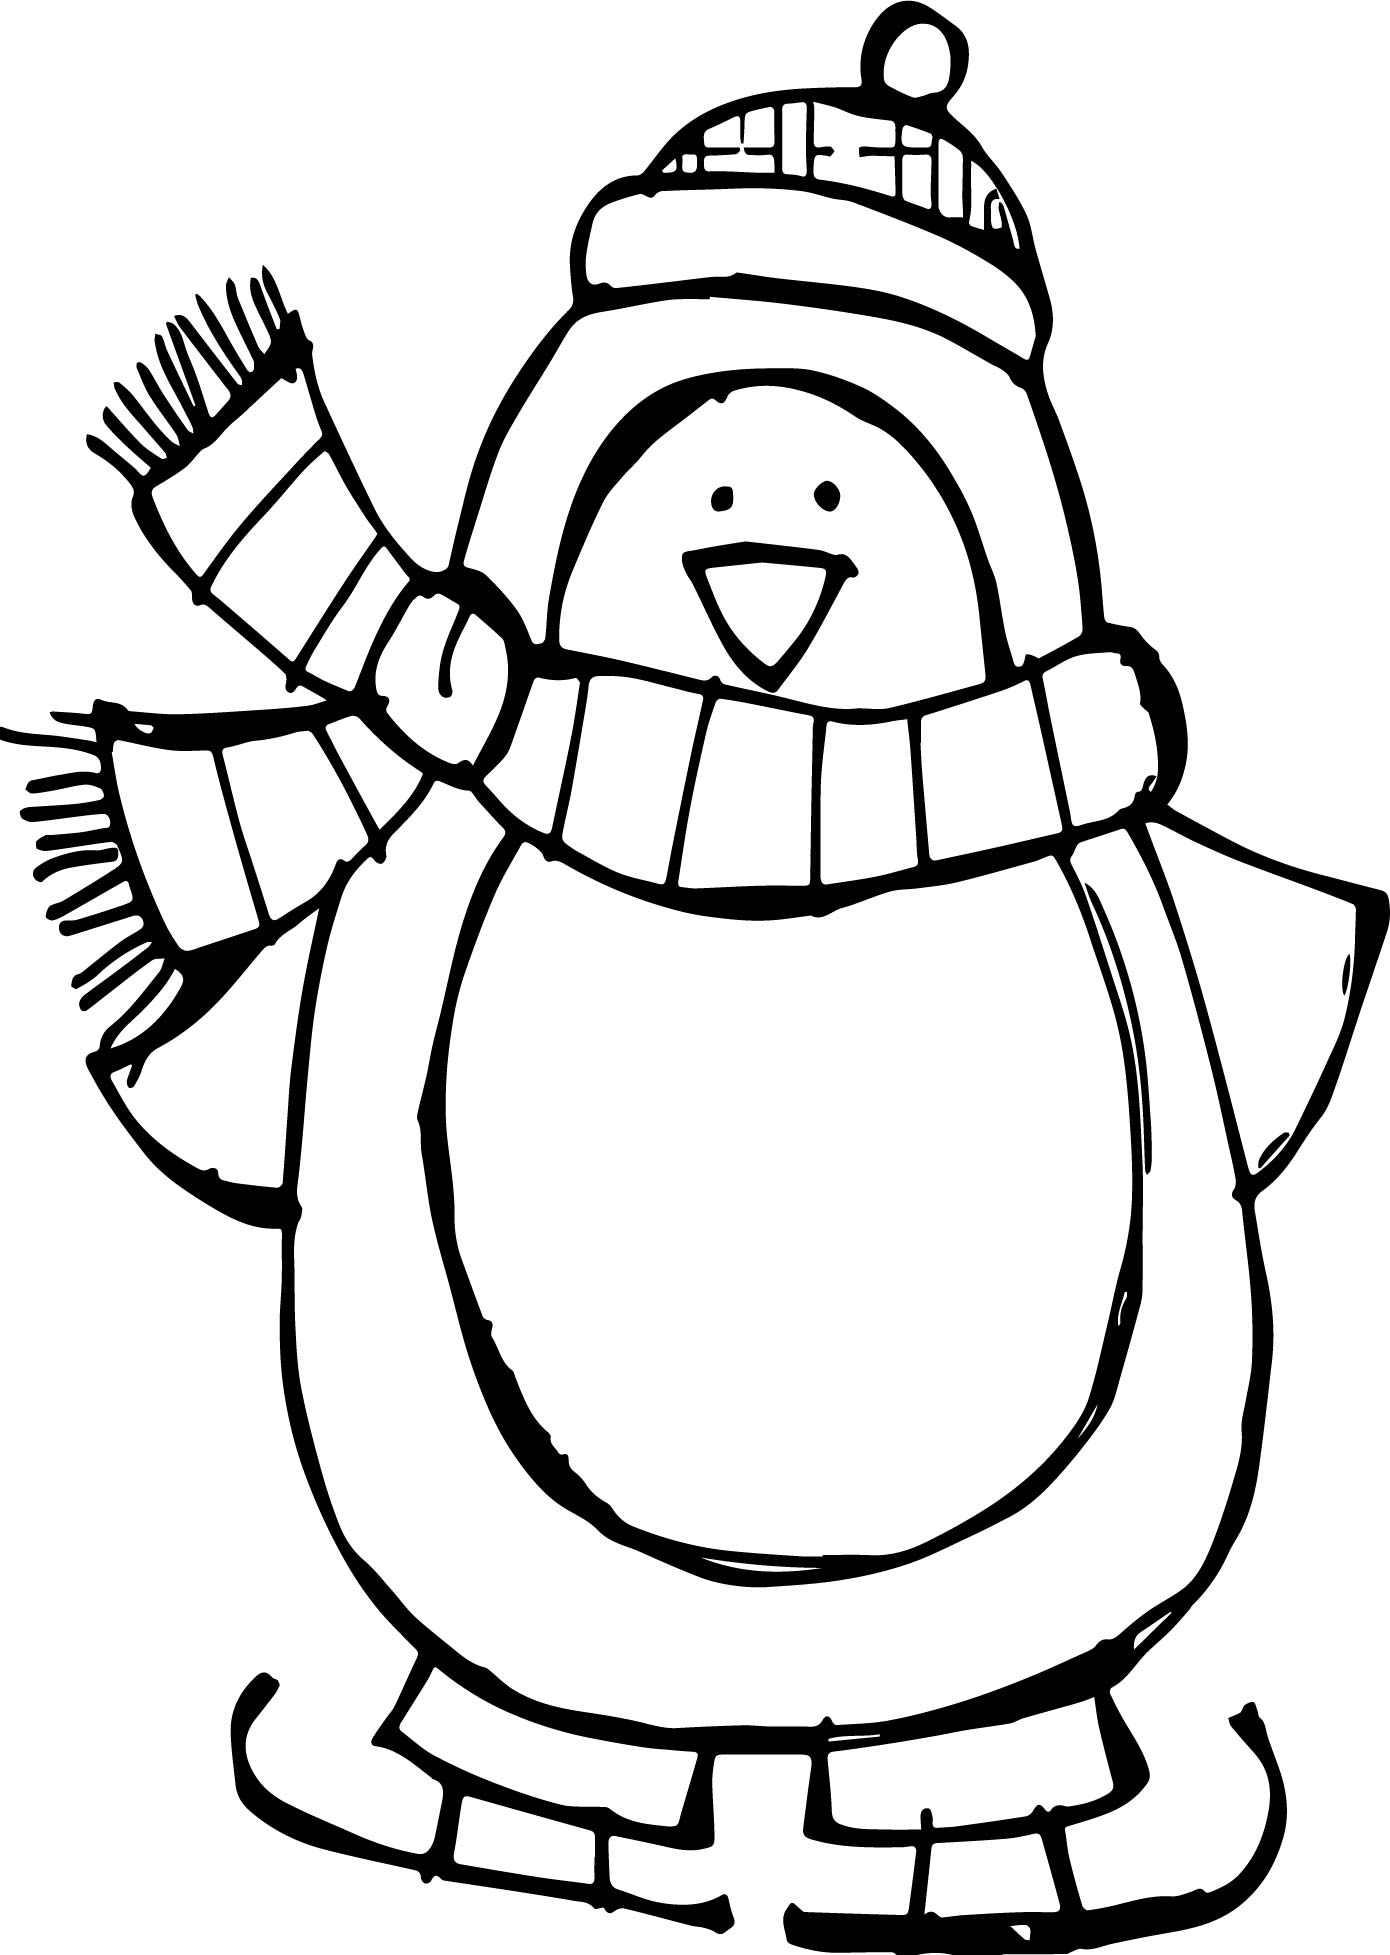 coloring pages penguins - winter basic penguin coloring page